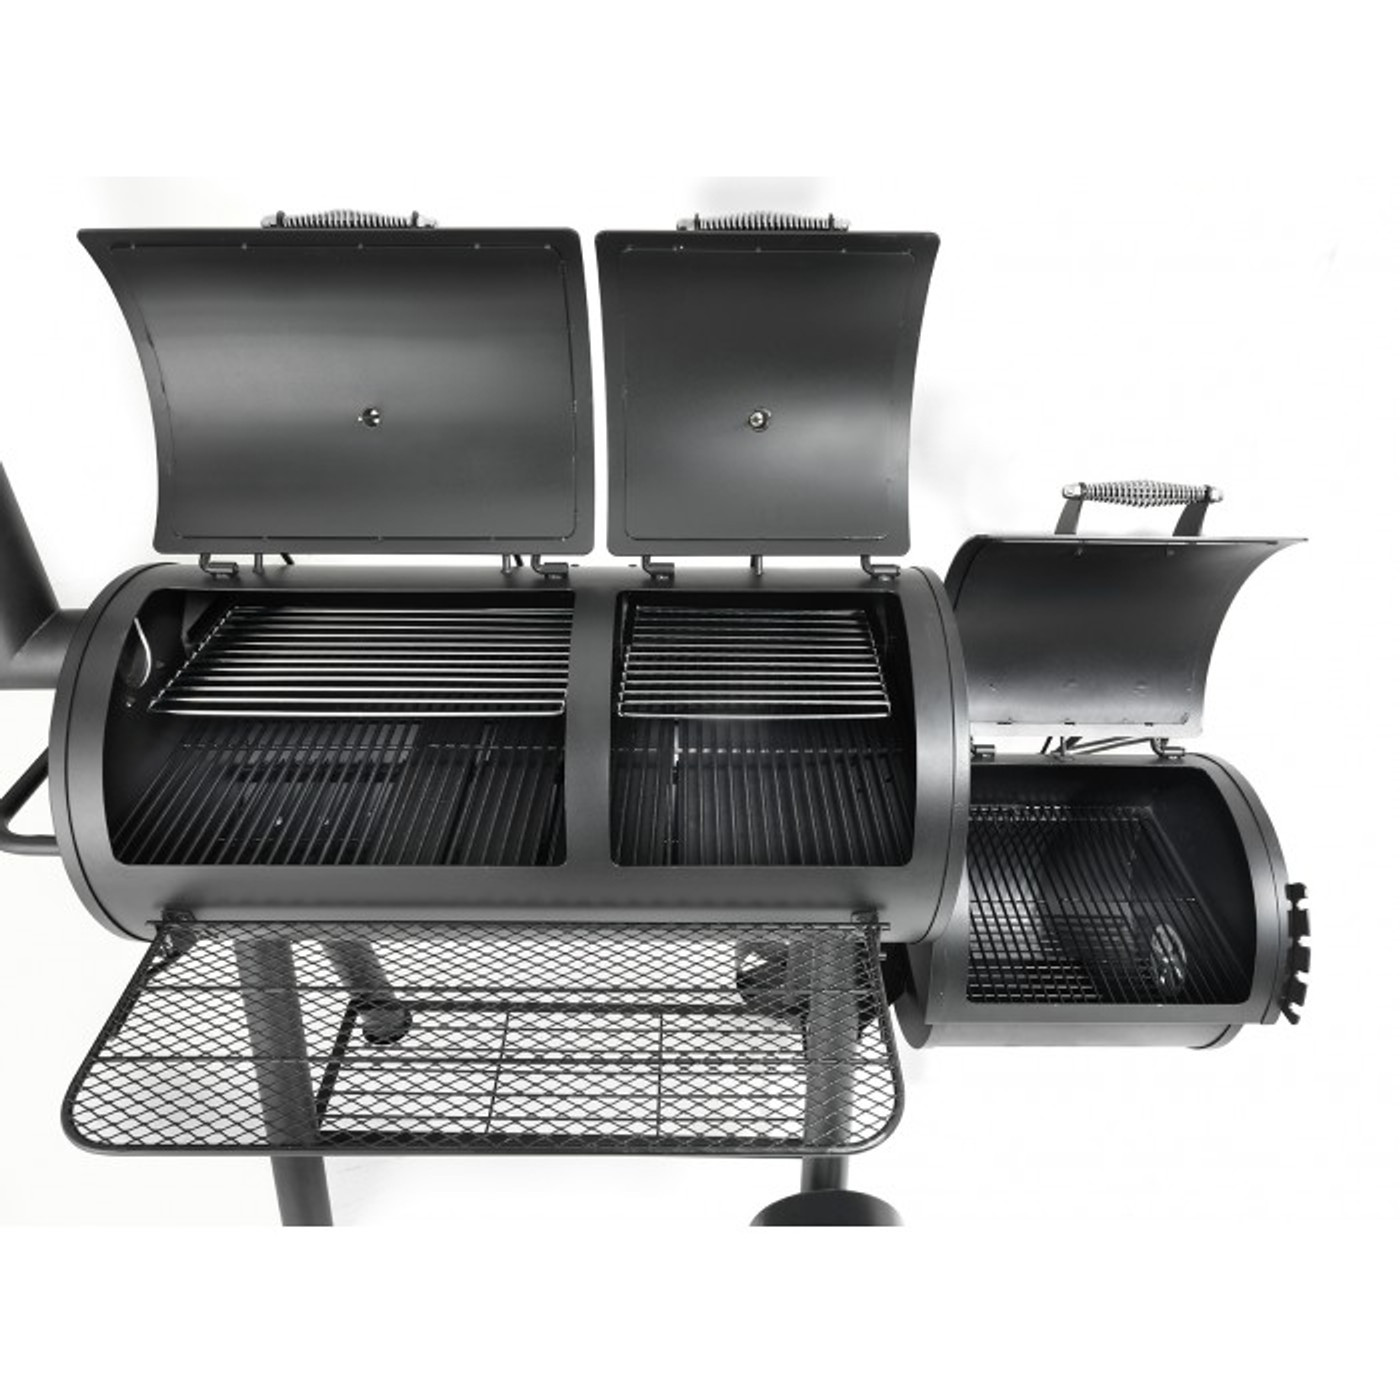 Huge cooking capacity with large cooking grates and warming shelves